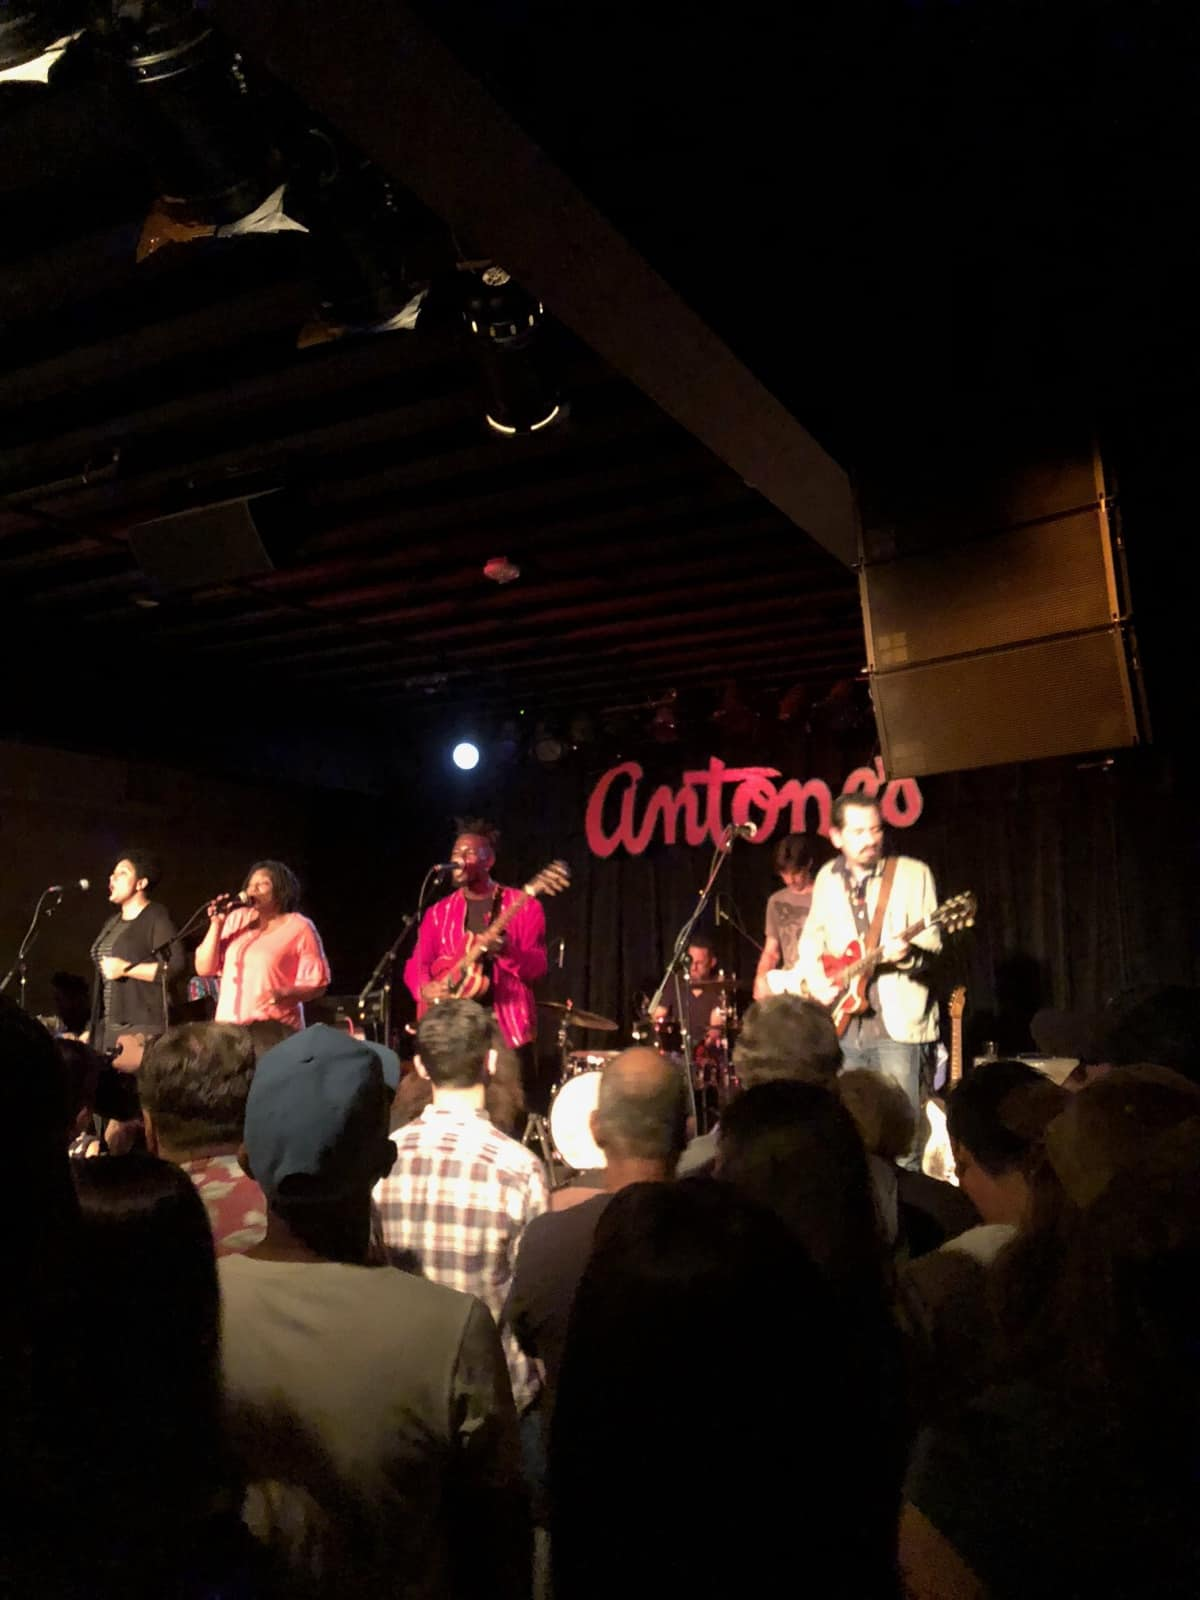 Concert at Antone's in Austin, TX